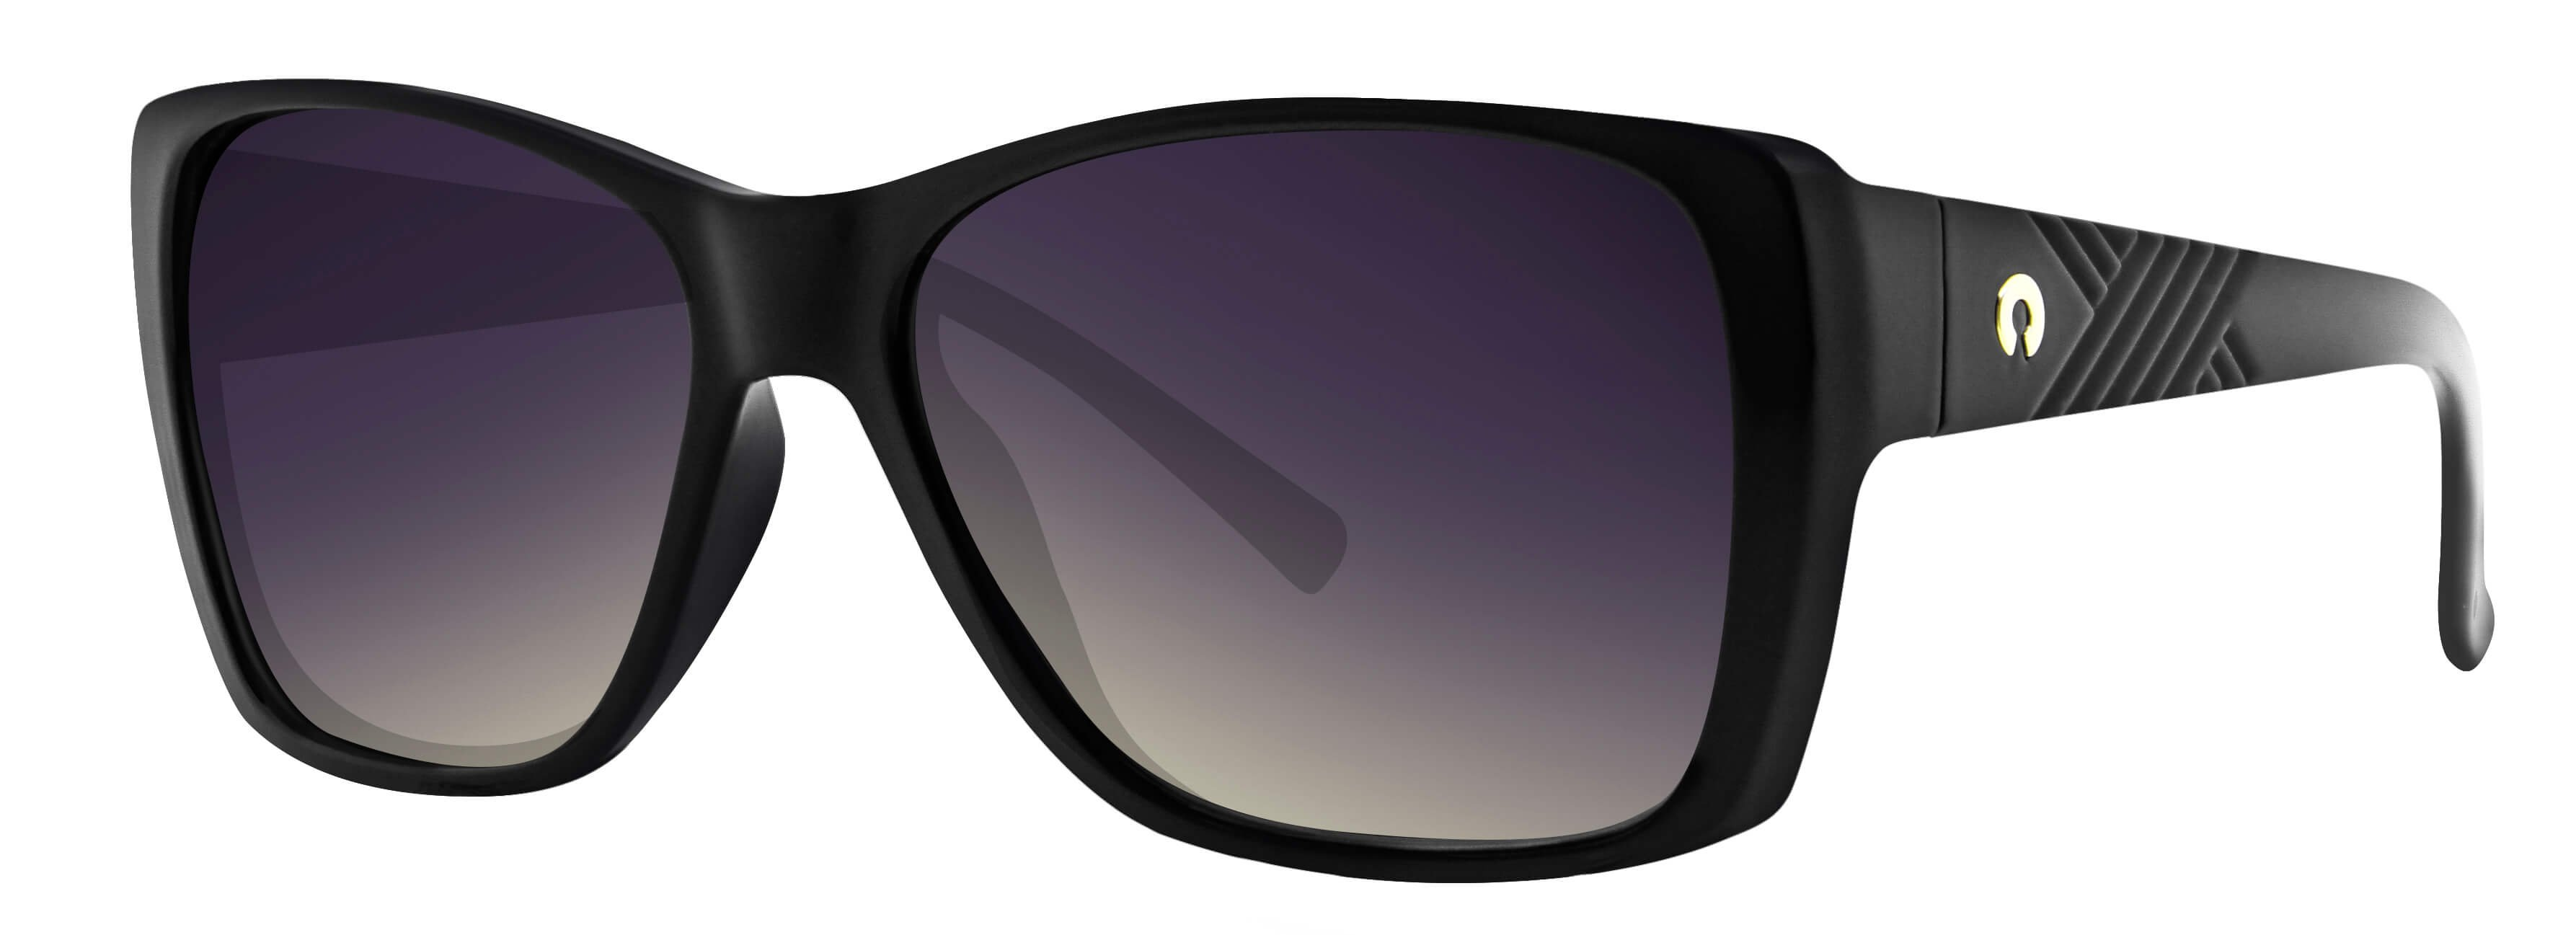 ÓC SECRET SIENNA GLOSS BLACK / POLARIZED GRADIENT GRAY